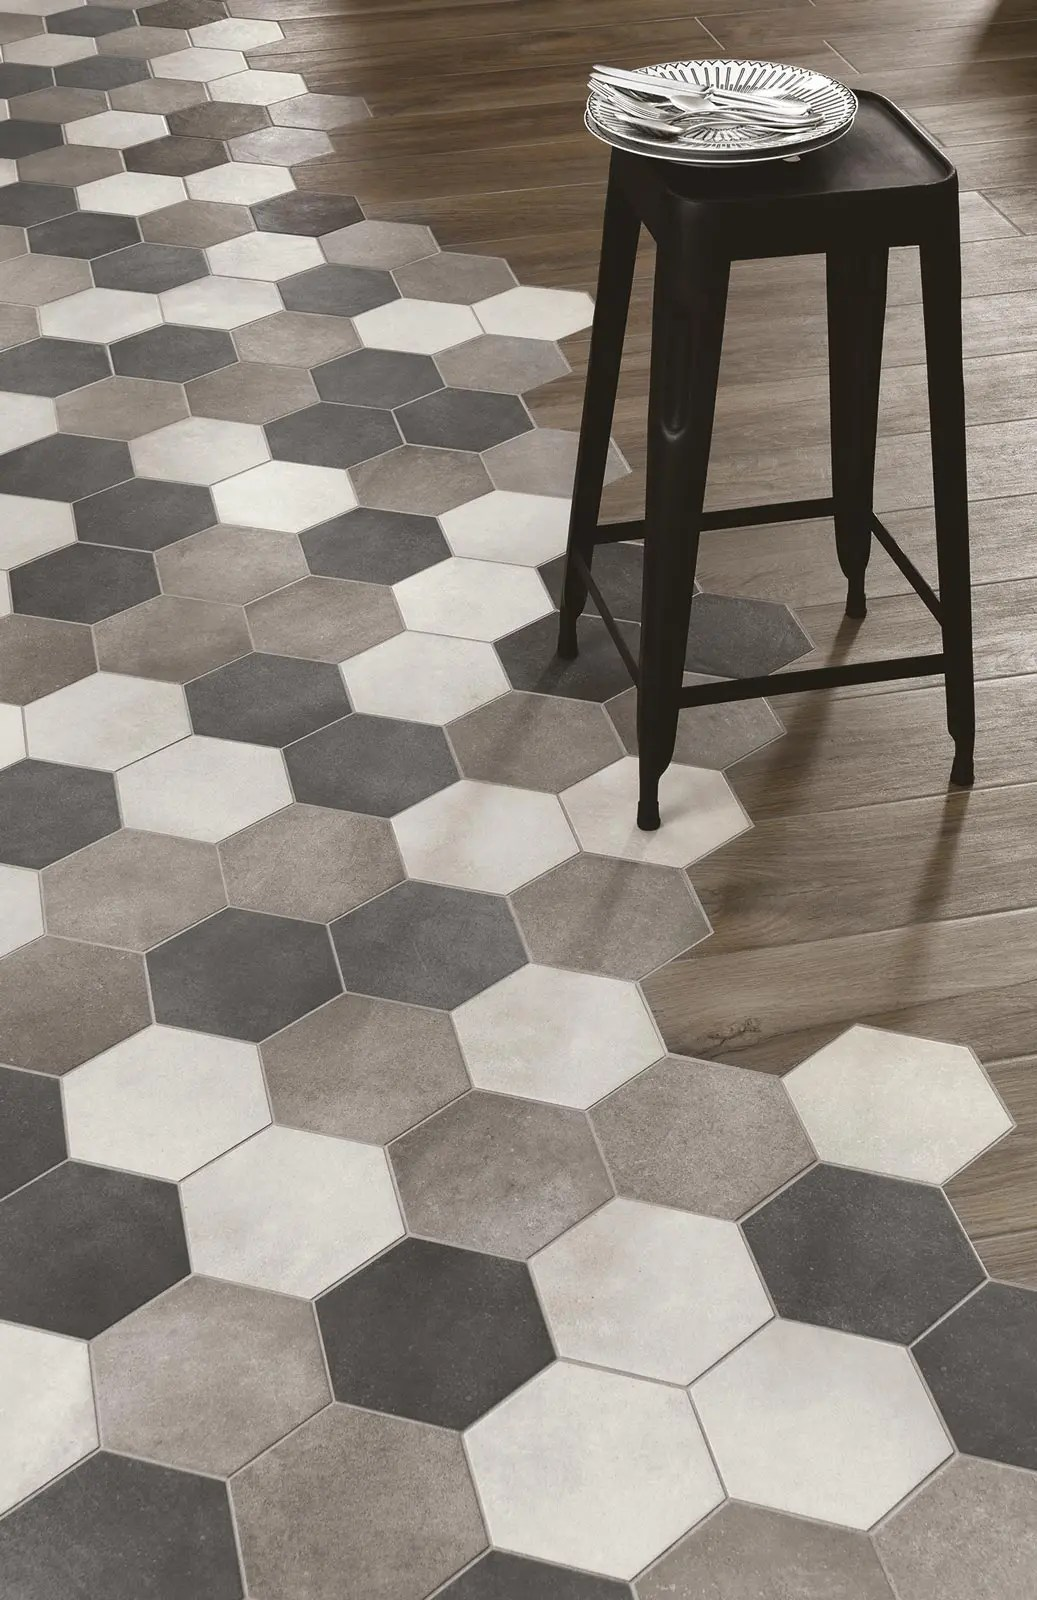 kitchen flooring ideas kitchen flooring ideas kitchen flooring Mixing color shades and mixing materials is an ultimate combo